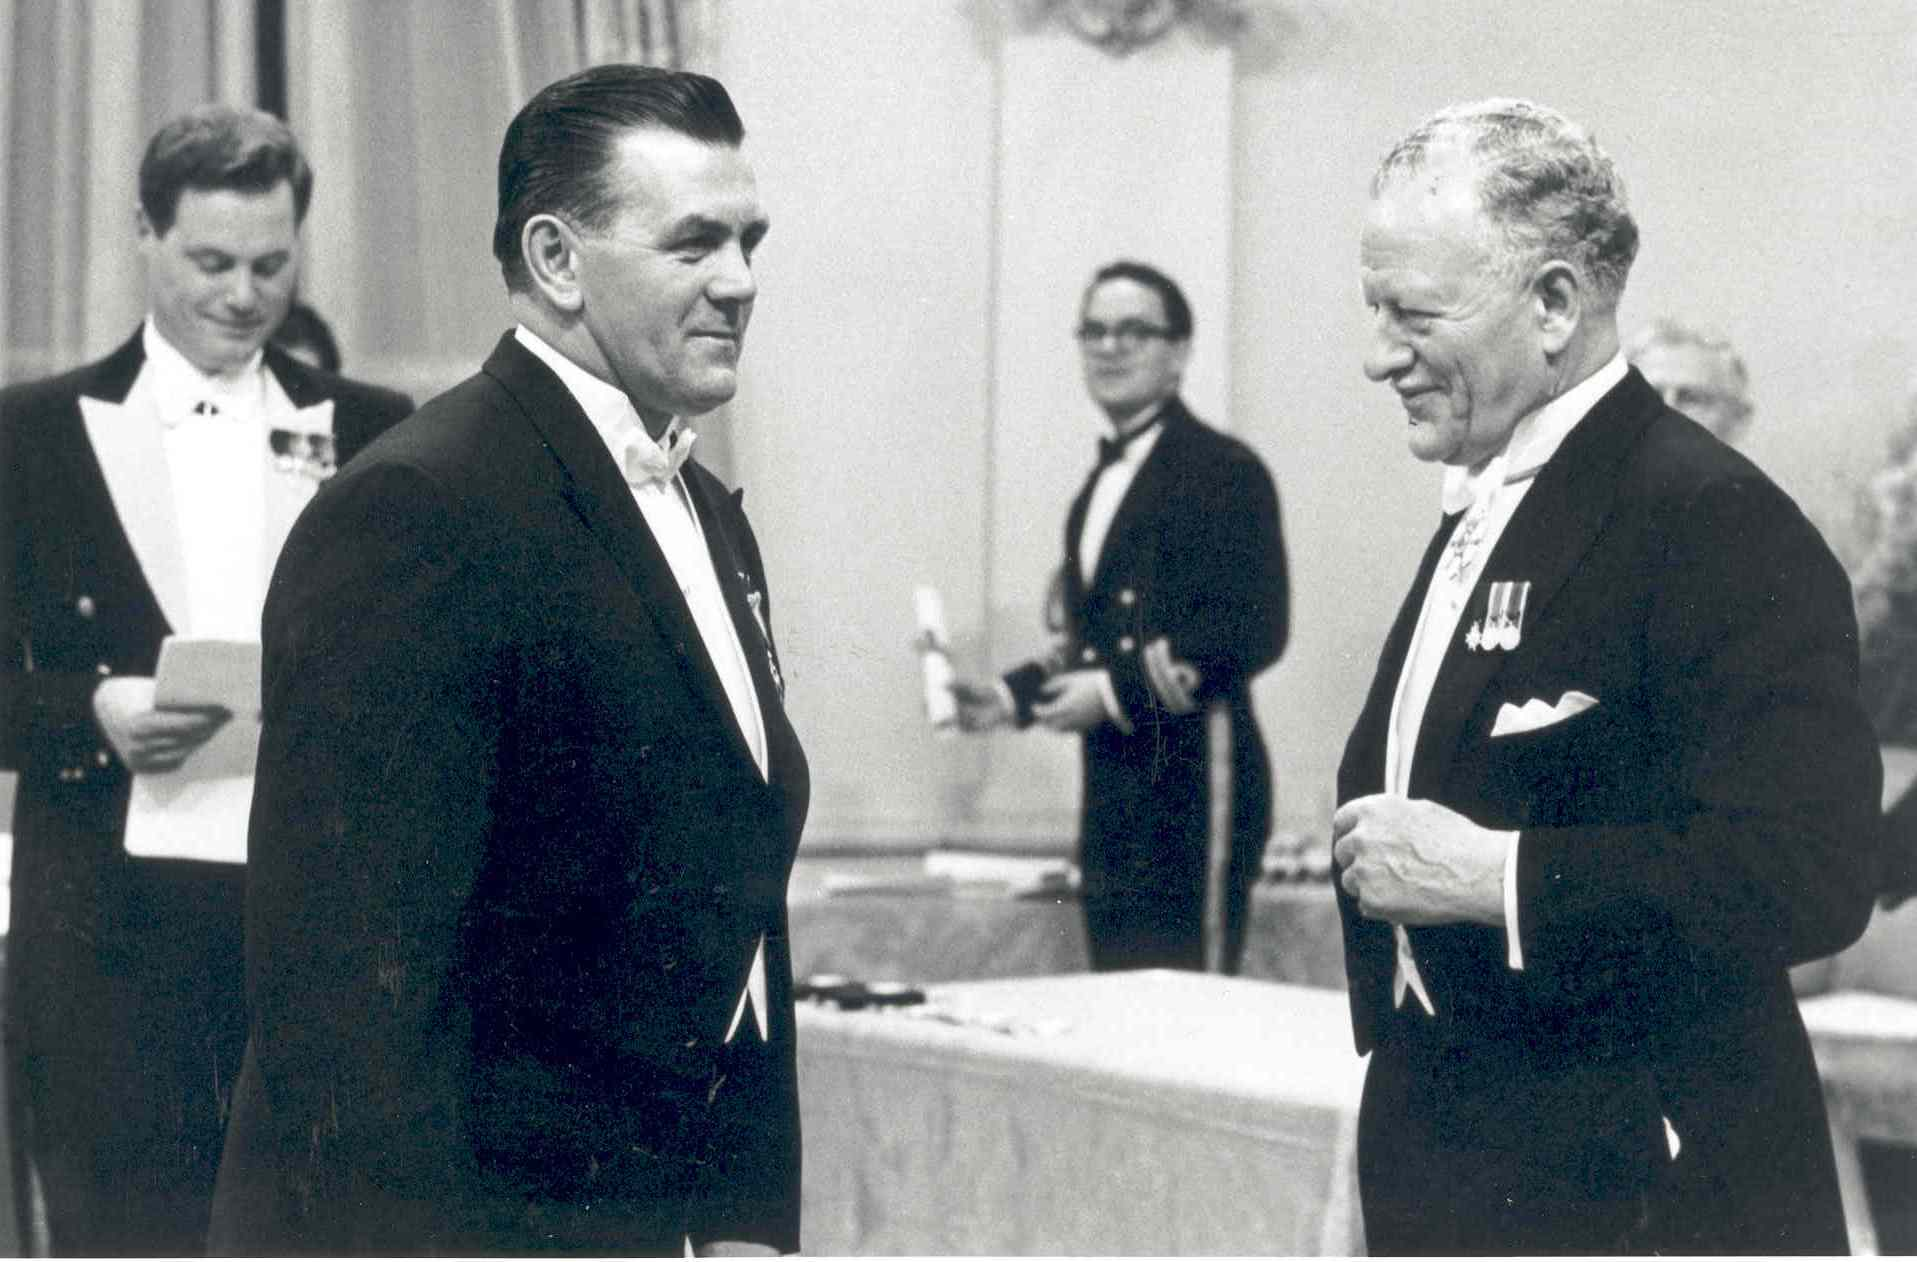 Governor General Roland Michener invests hockey great Maurice Richard in the Order of Canada. Date: November 24, 1967. Photographer: National Film Board of Canada. Reference: Library and Archives Canada, PA-211754.